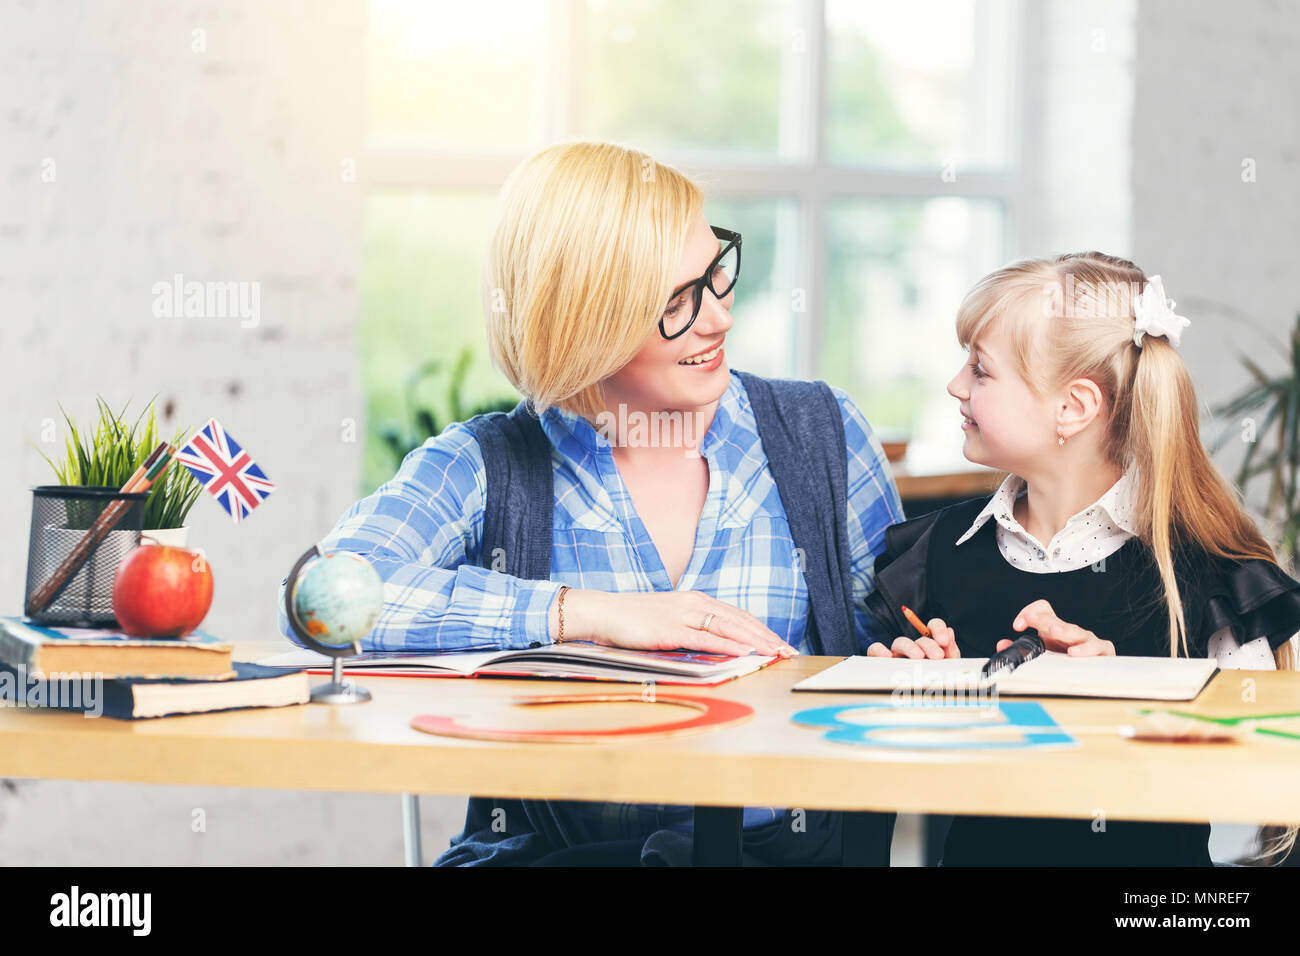 English language female teacher studying with smart kid girl in light white classroom, children learning concept - Stock Image